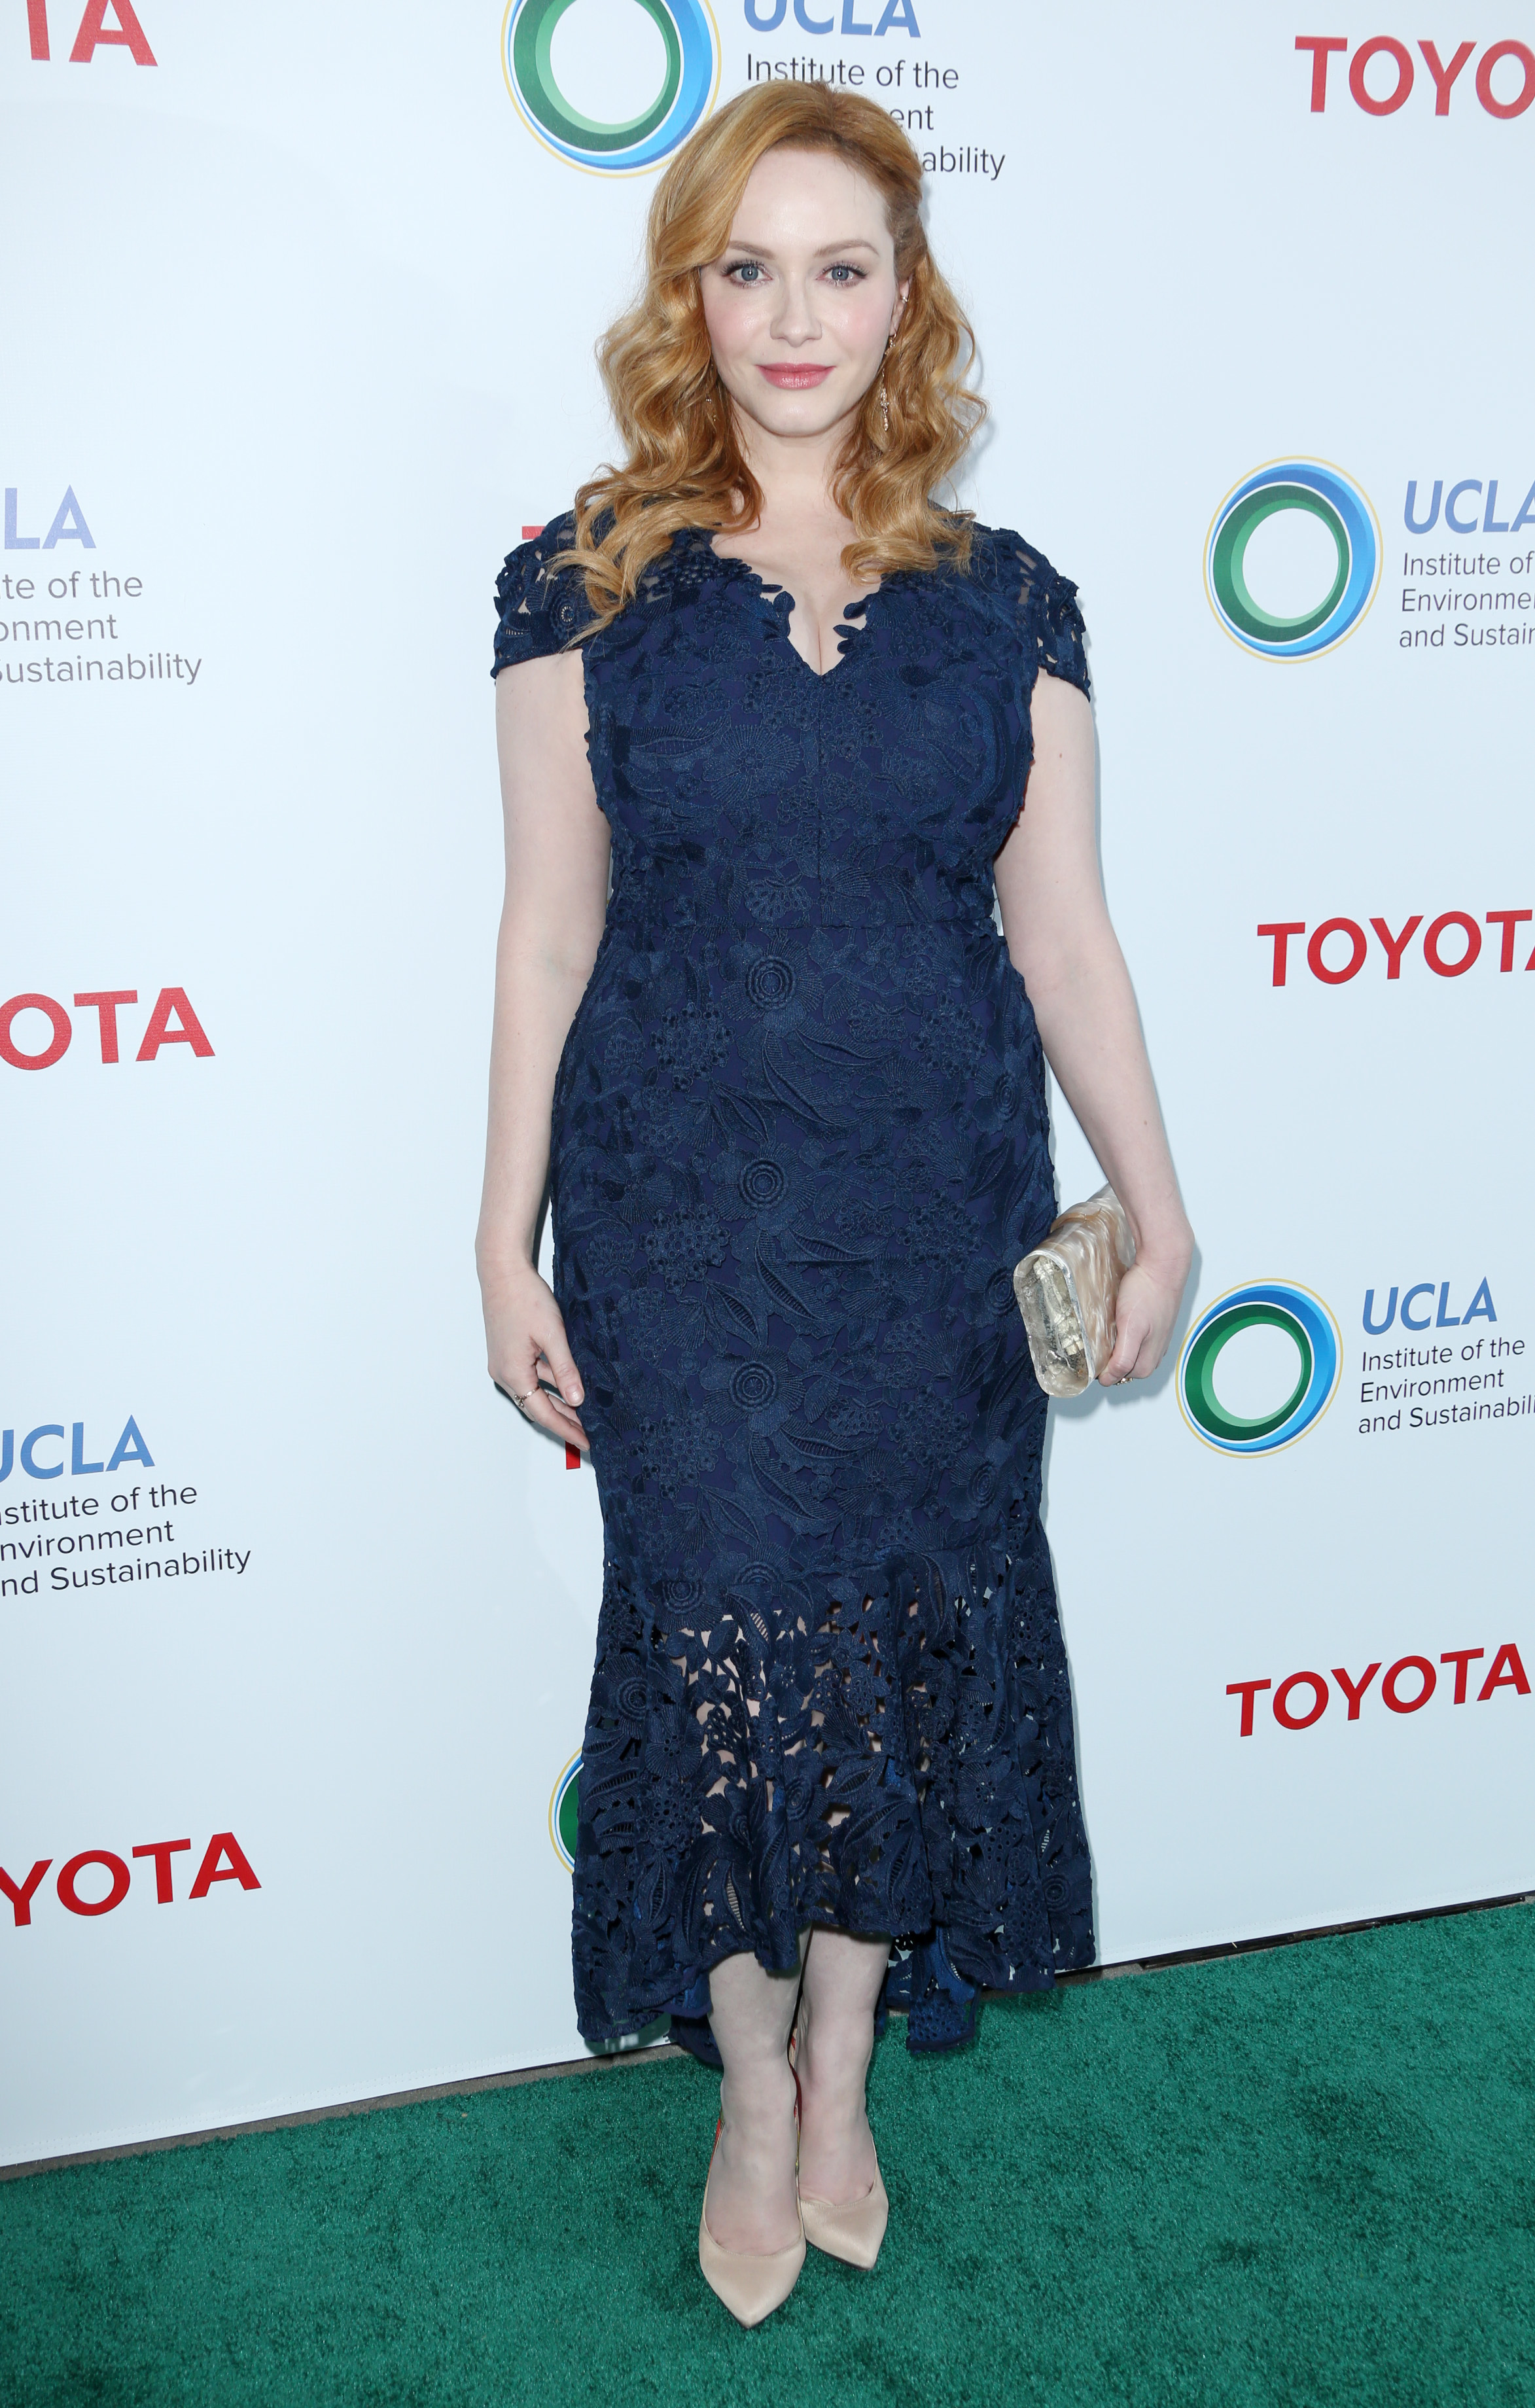 Christina Hendricks attends the UCLA Institute of the Environment and Sustainability Gala in Los Angeles on March 13, 2017.